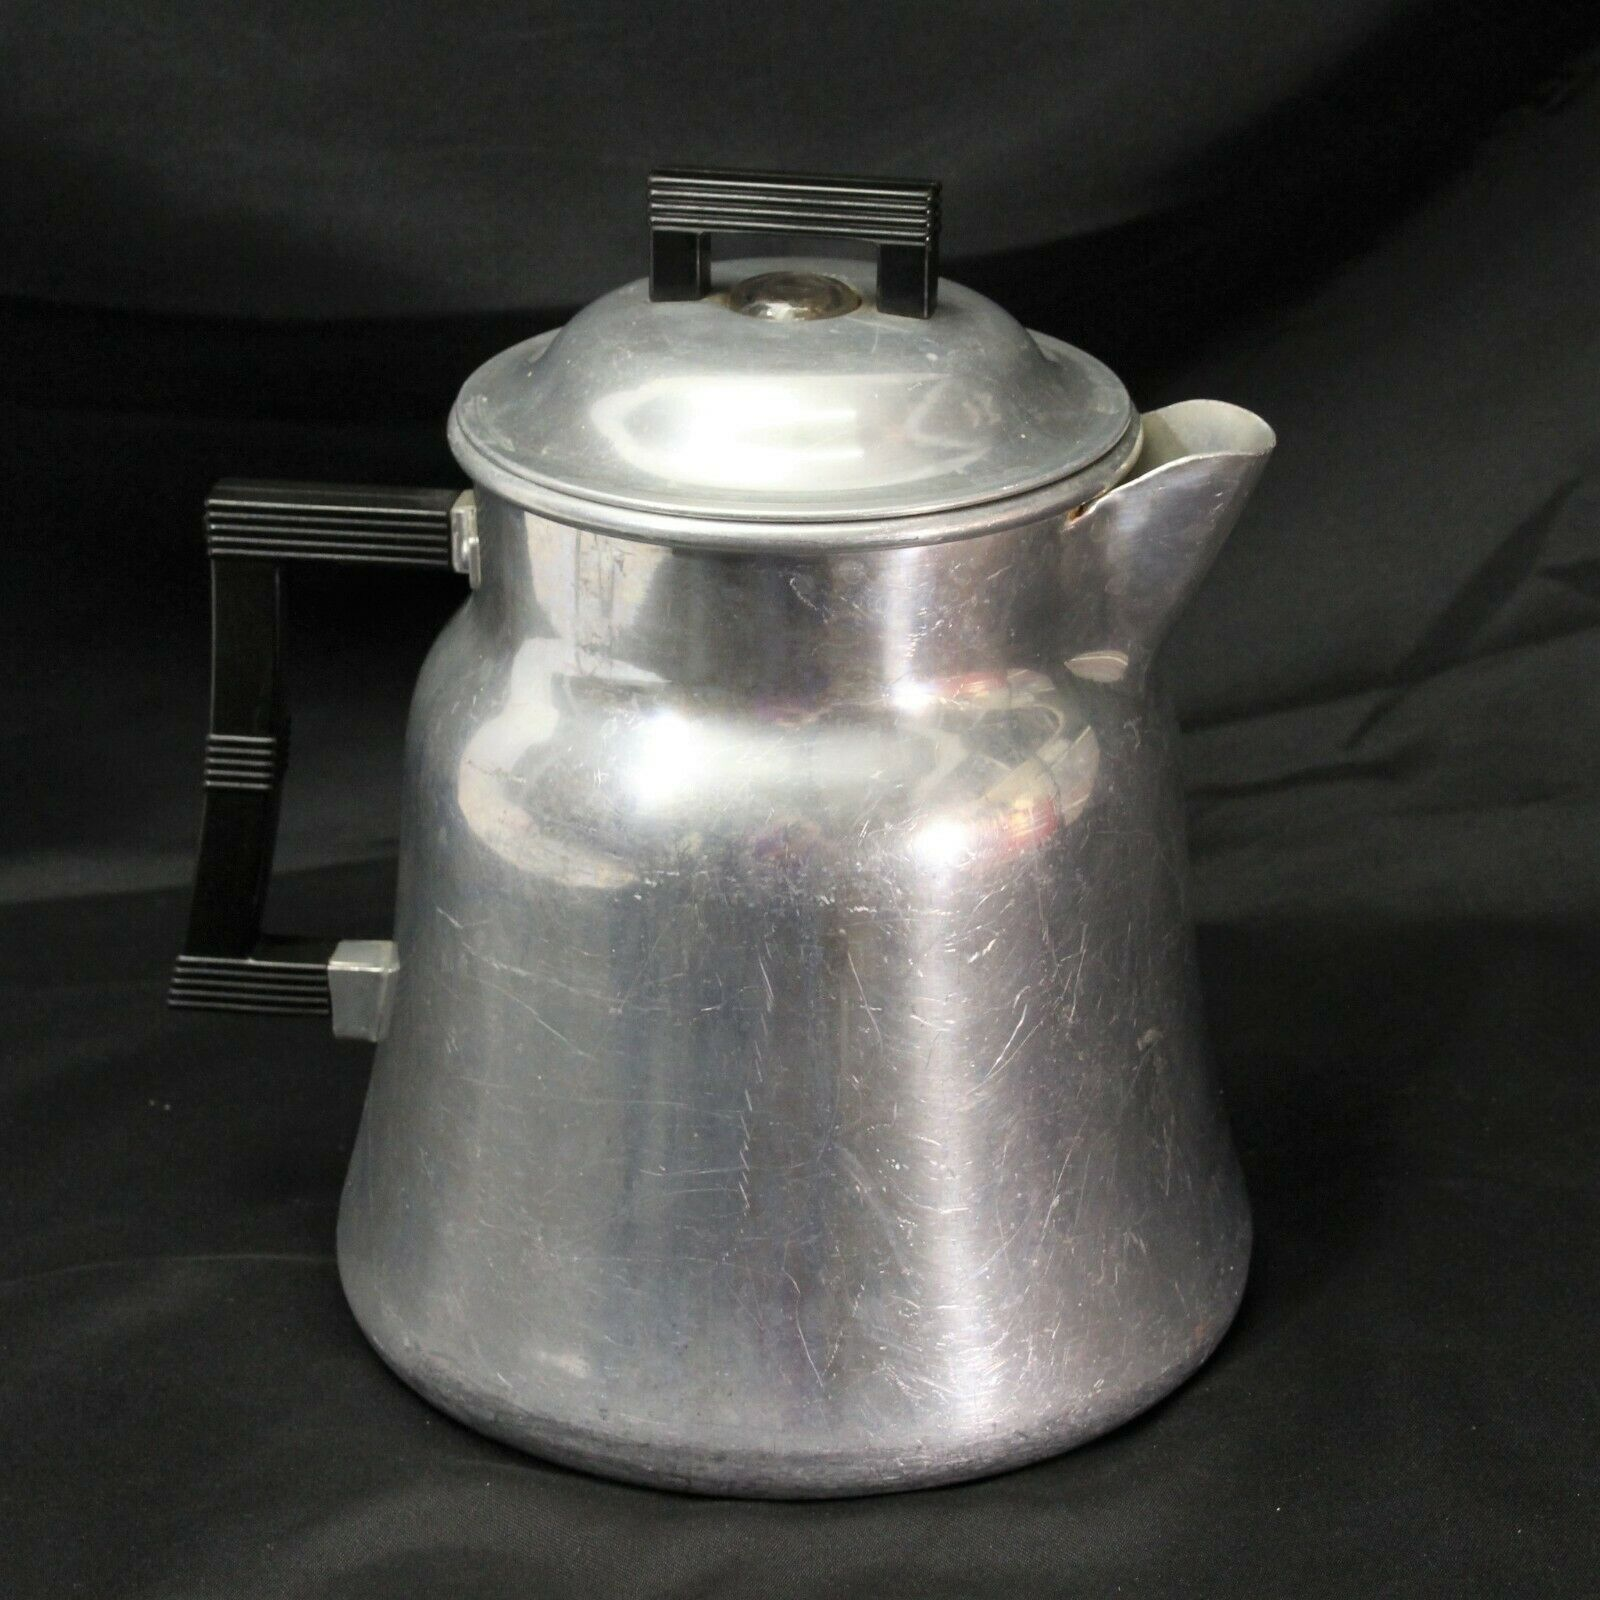 Wear Ever Coffee Pot Percolator 3016 Aluminum 16 cup Camping Outdoor Complete - $48.99